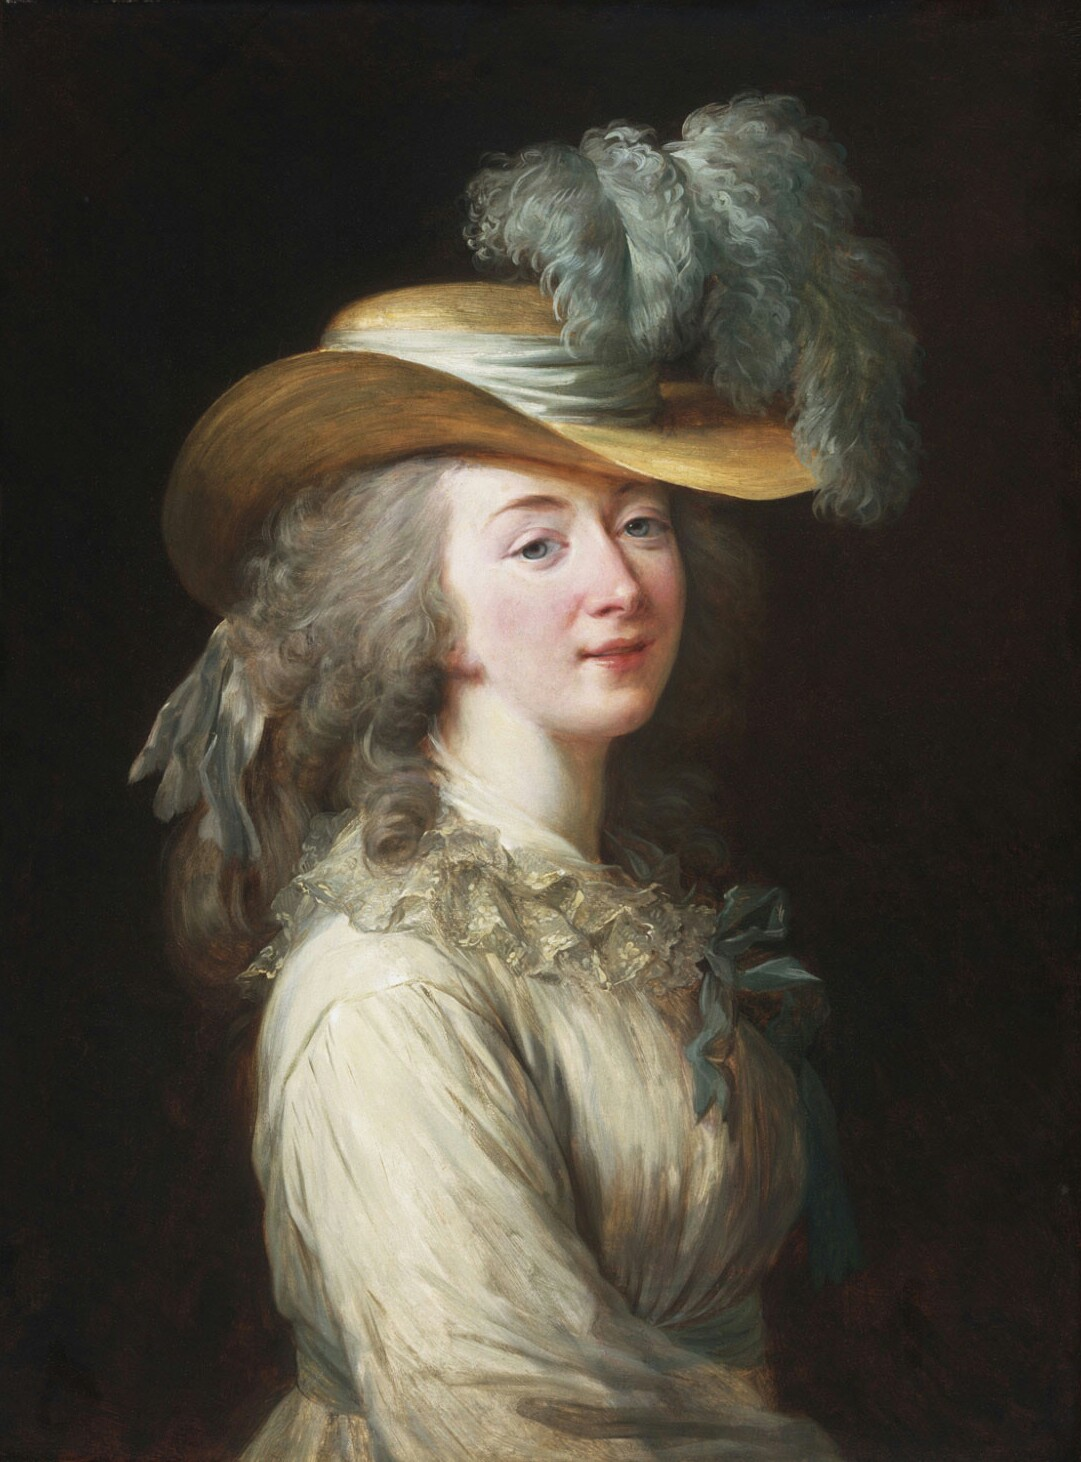 Fichier:Madame Dubarry1.jpg